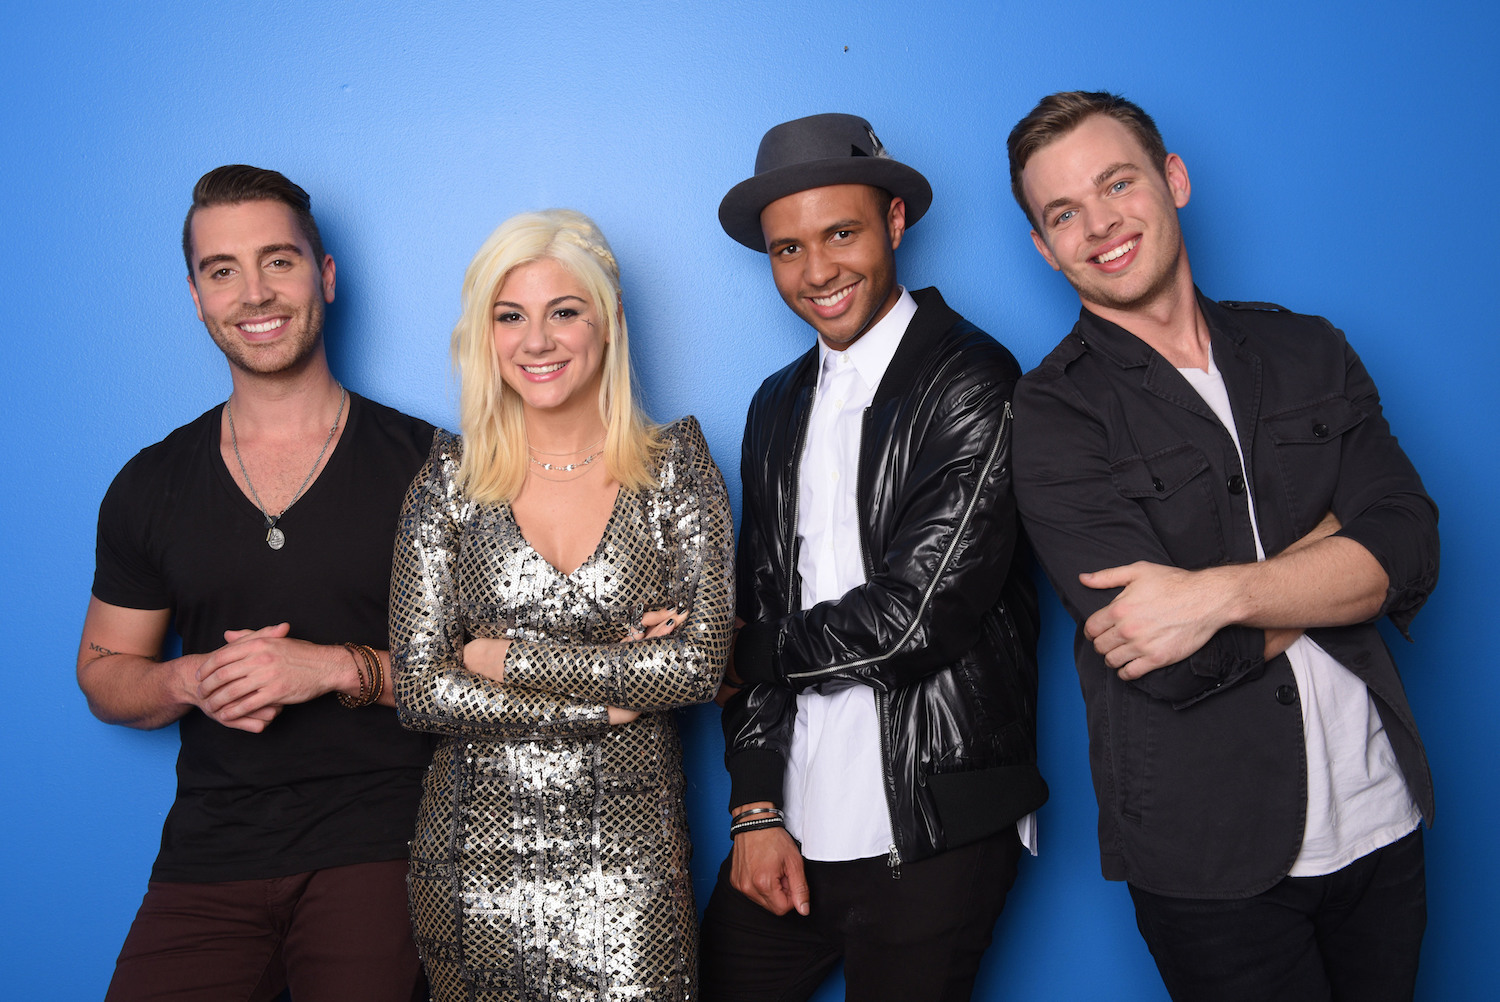 `American Idol XIV`: The top four, from left: Nick Fradiani, Jax, Rayvon Owen and Clark Beckham (FOX photo by Michael Becker).